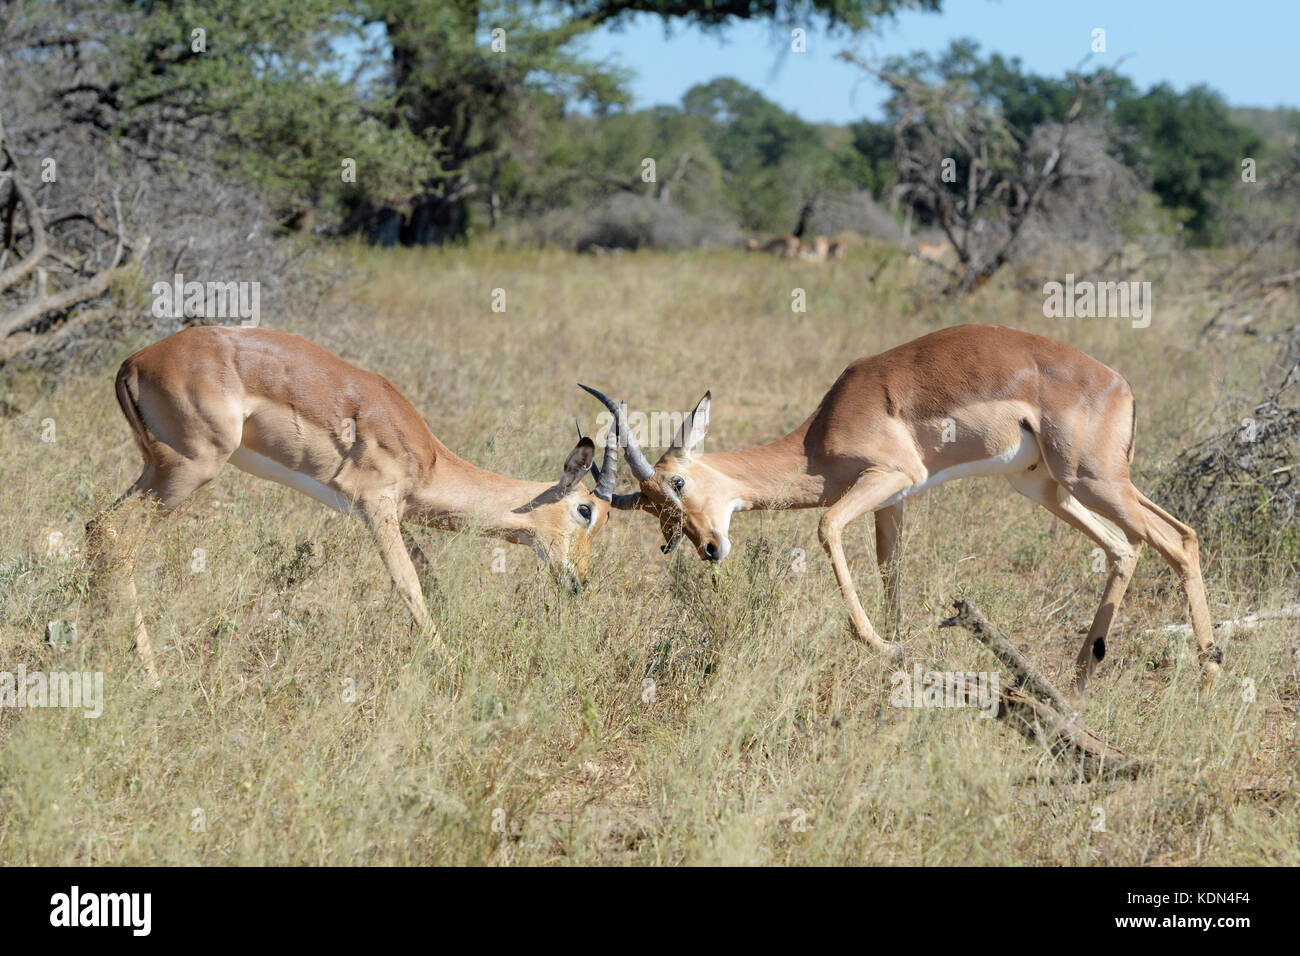 Two Impala (Aepyceros melampus) male fighting for dominance, Kruger National Park, South Africa - Stock Image